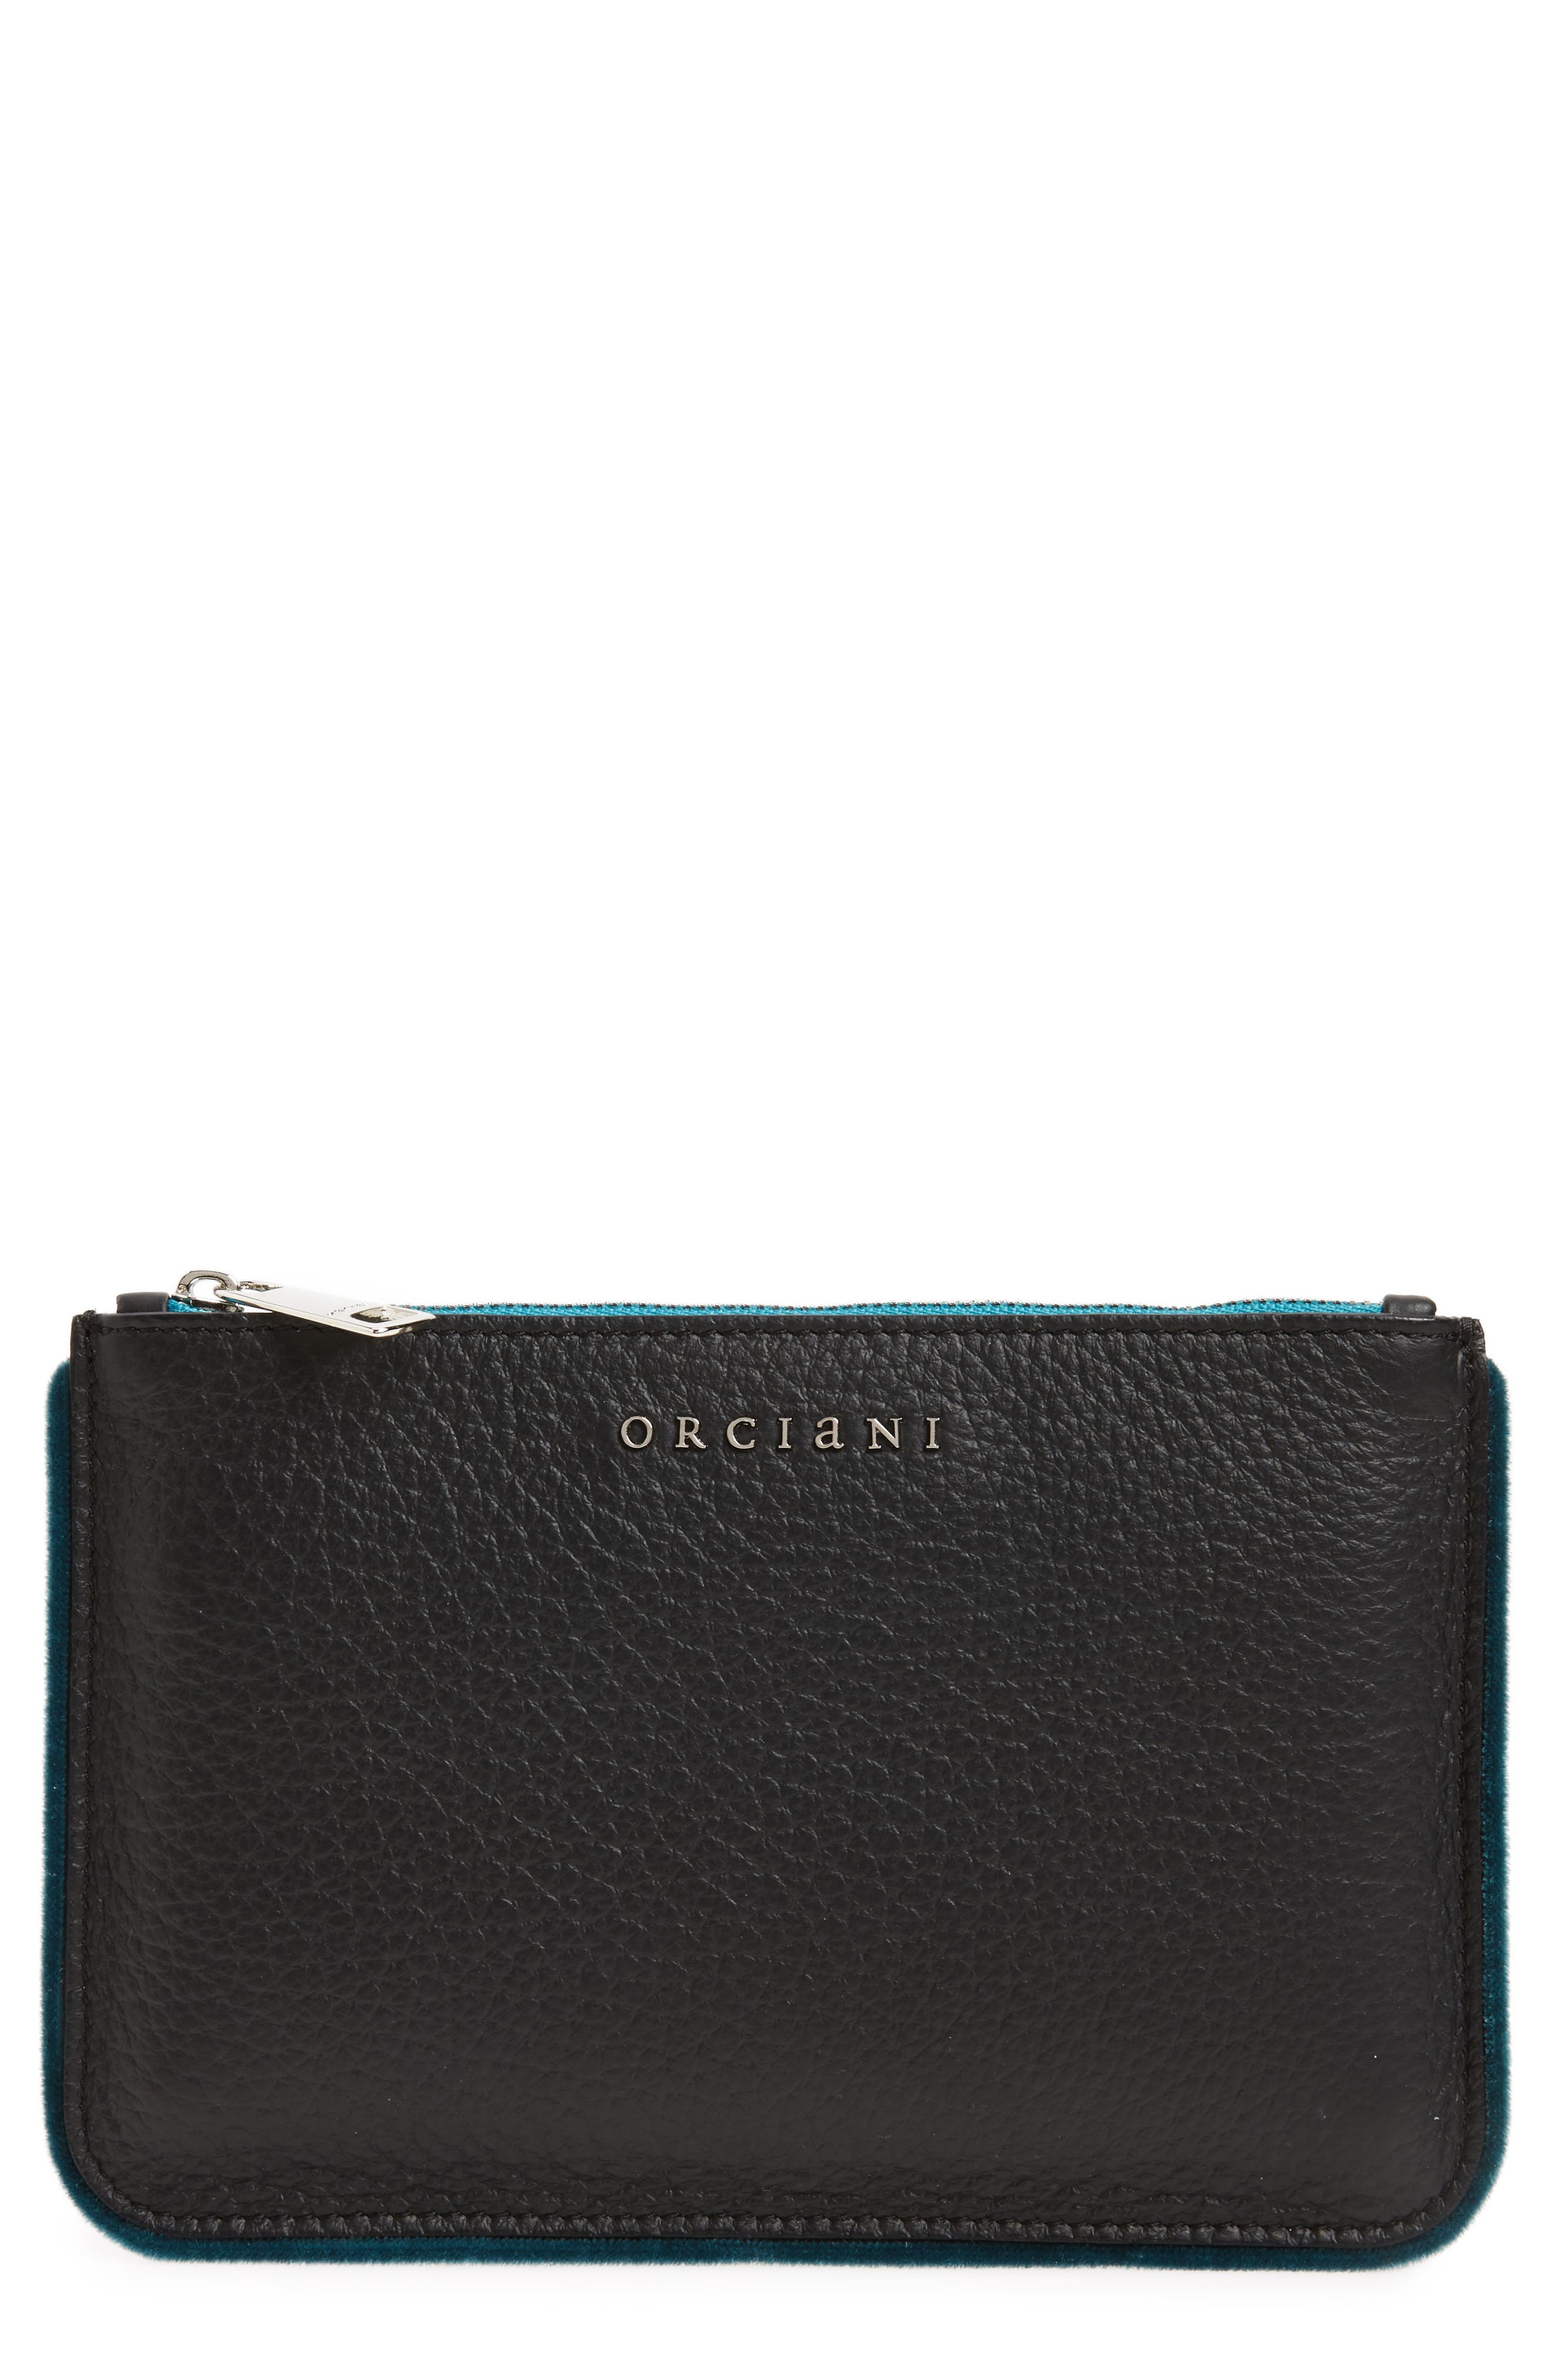 Alternate Image 1 Selected - Orciani Large Soft Line Velvet Trim Calfskin Leather Pouch